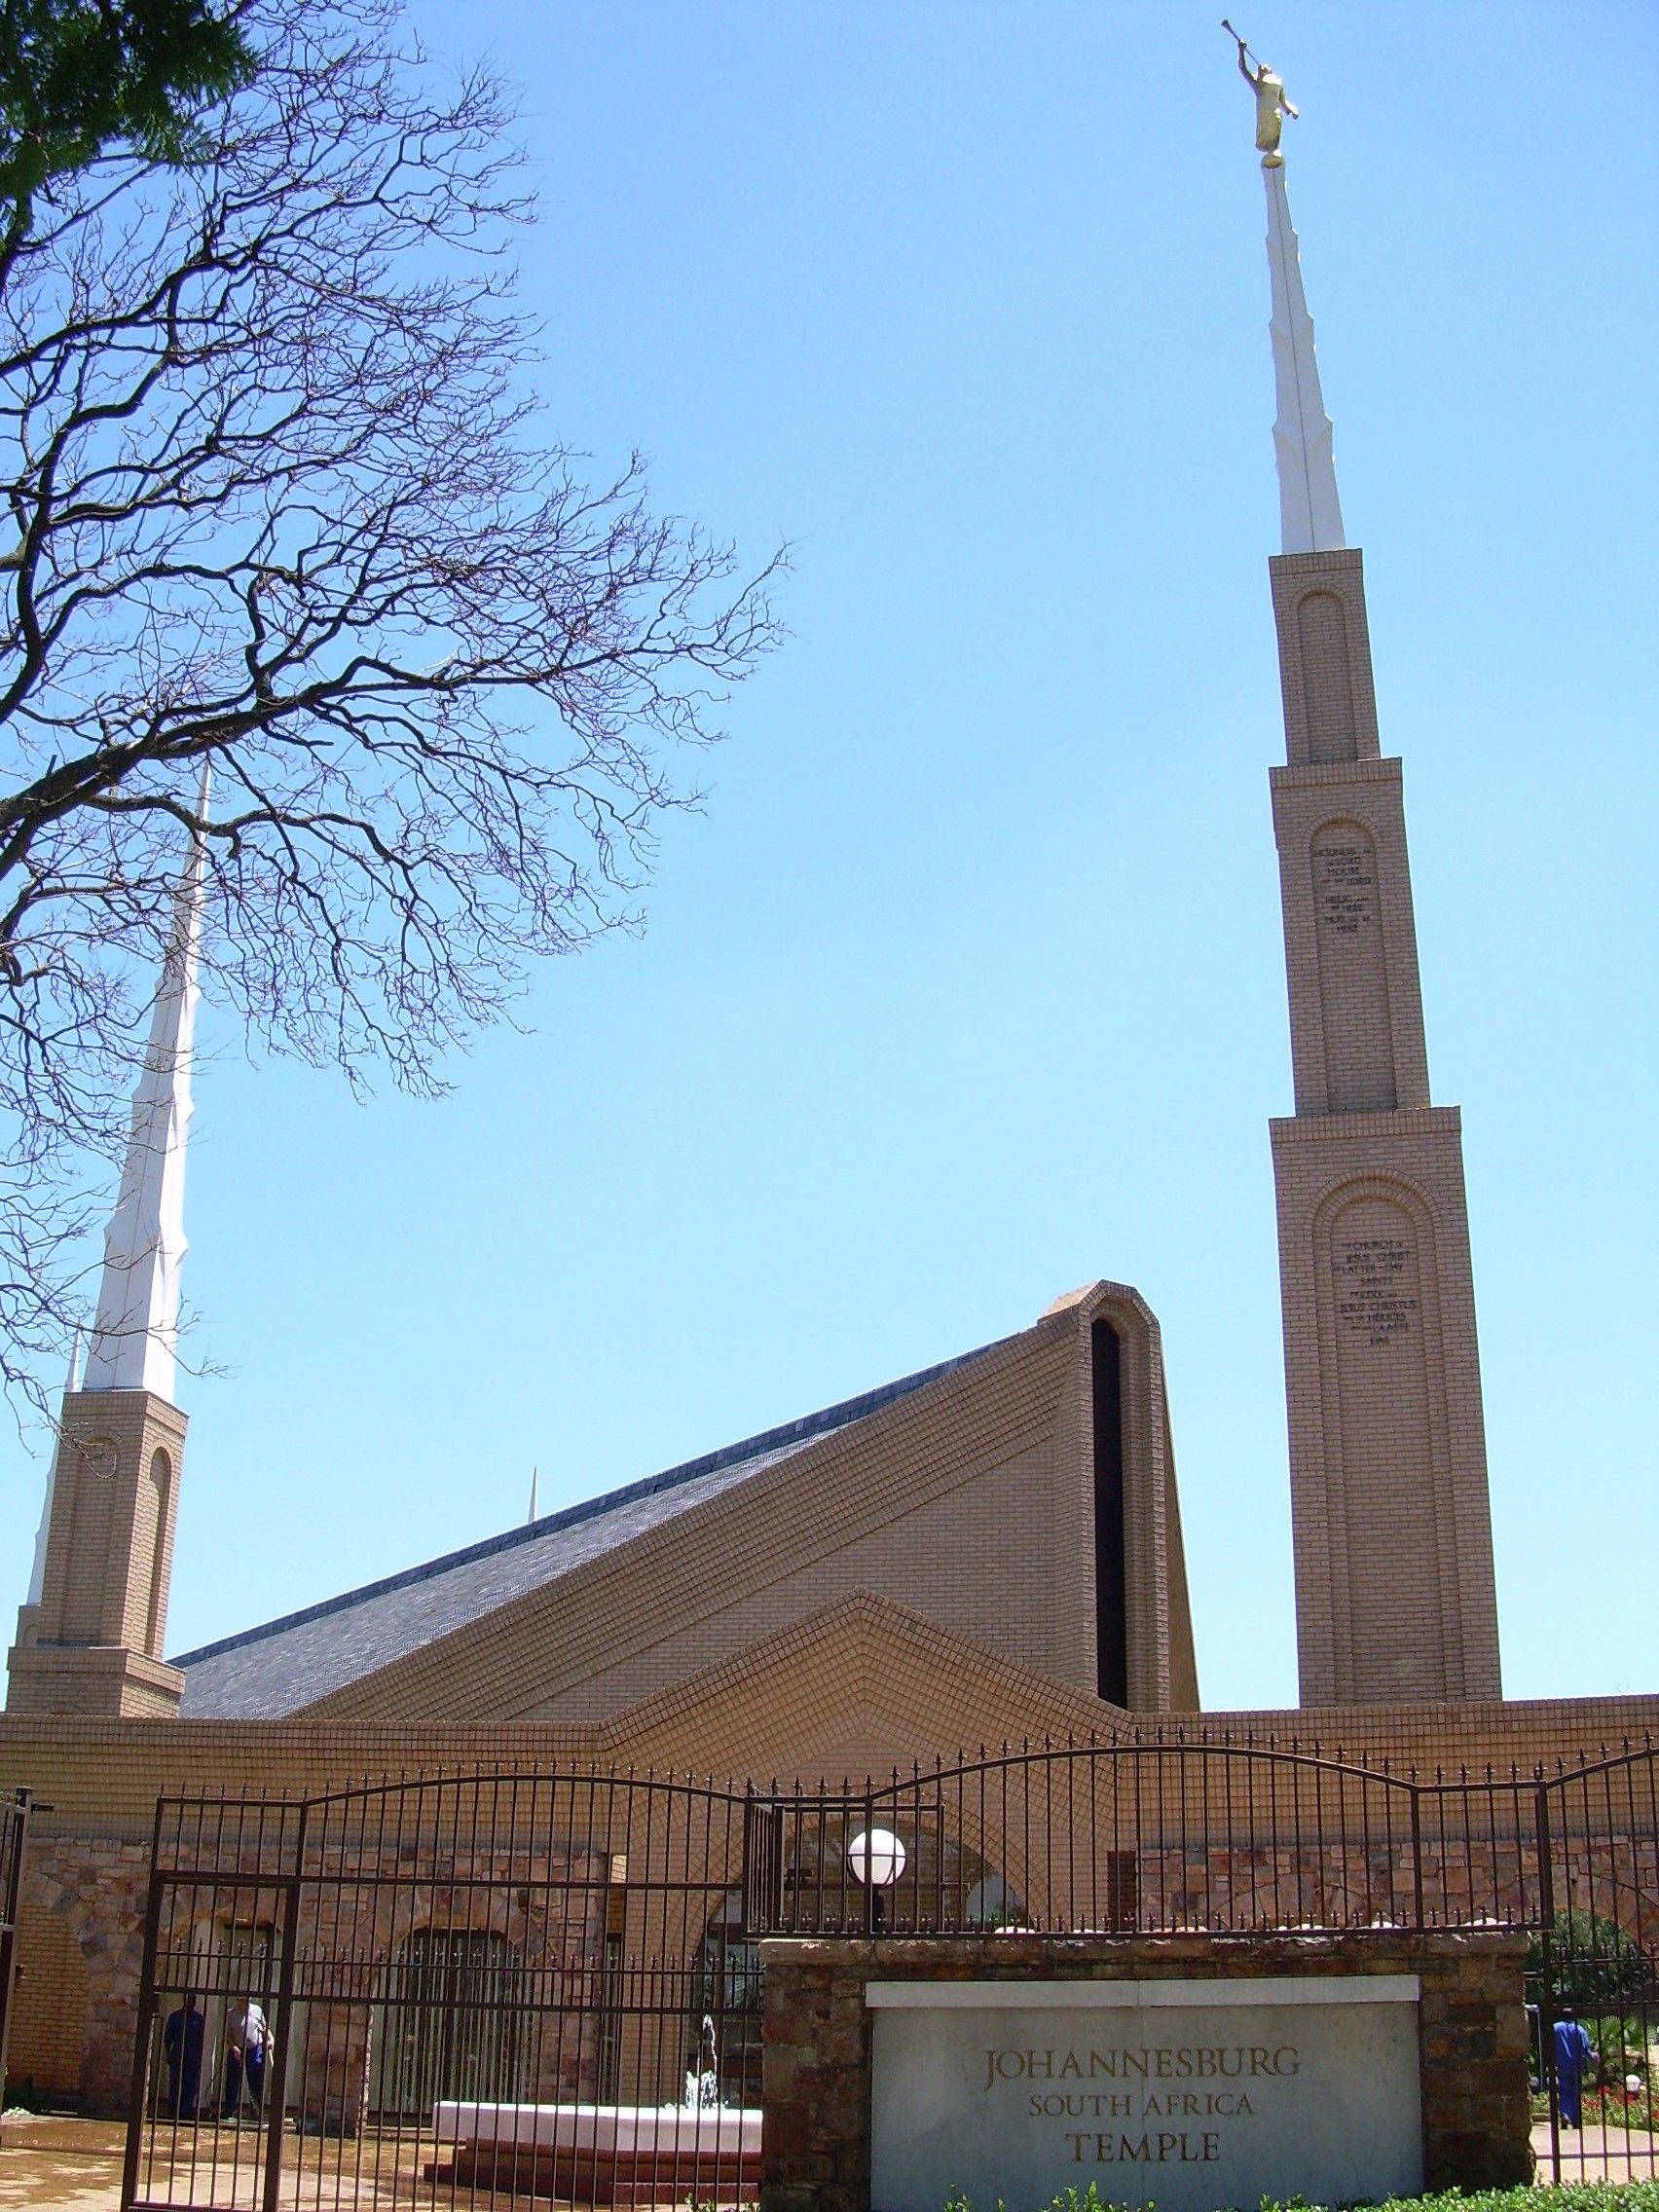 An exterior view of the Johannesburg South Africa Temple.